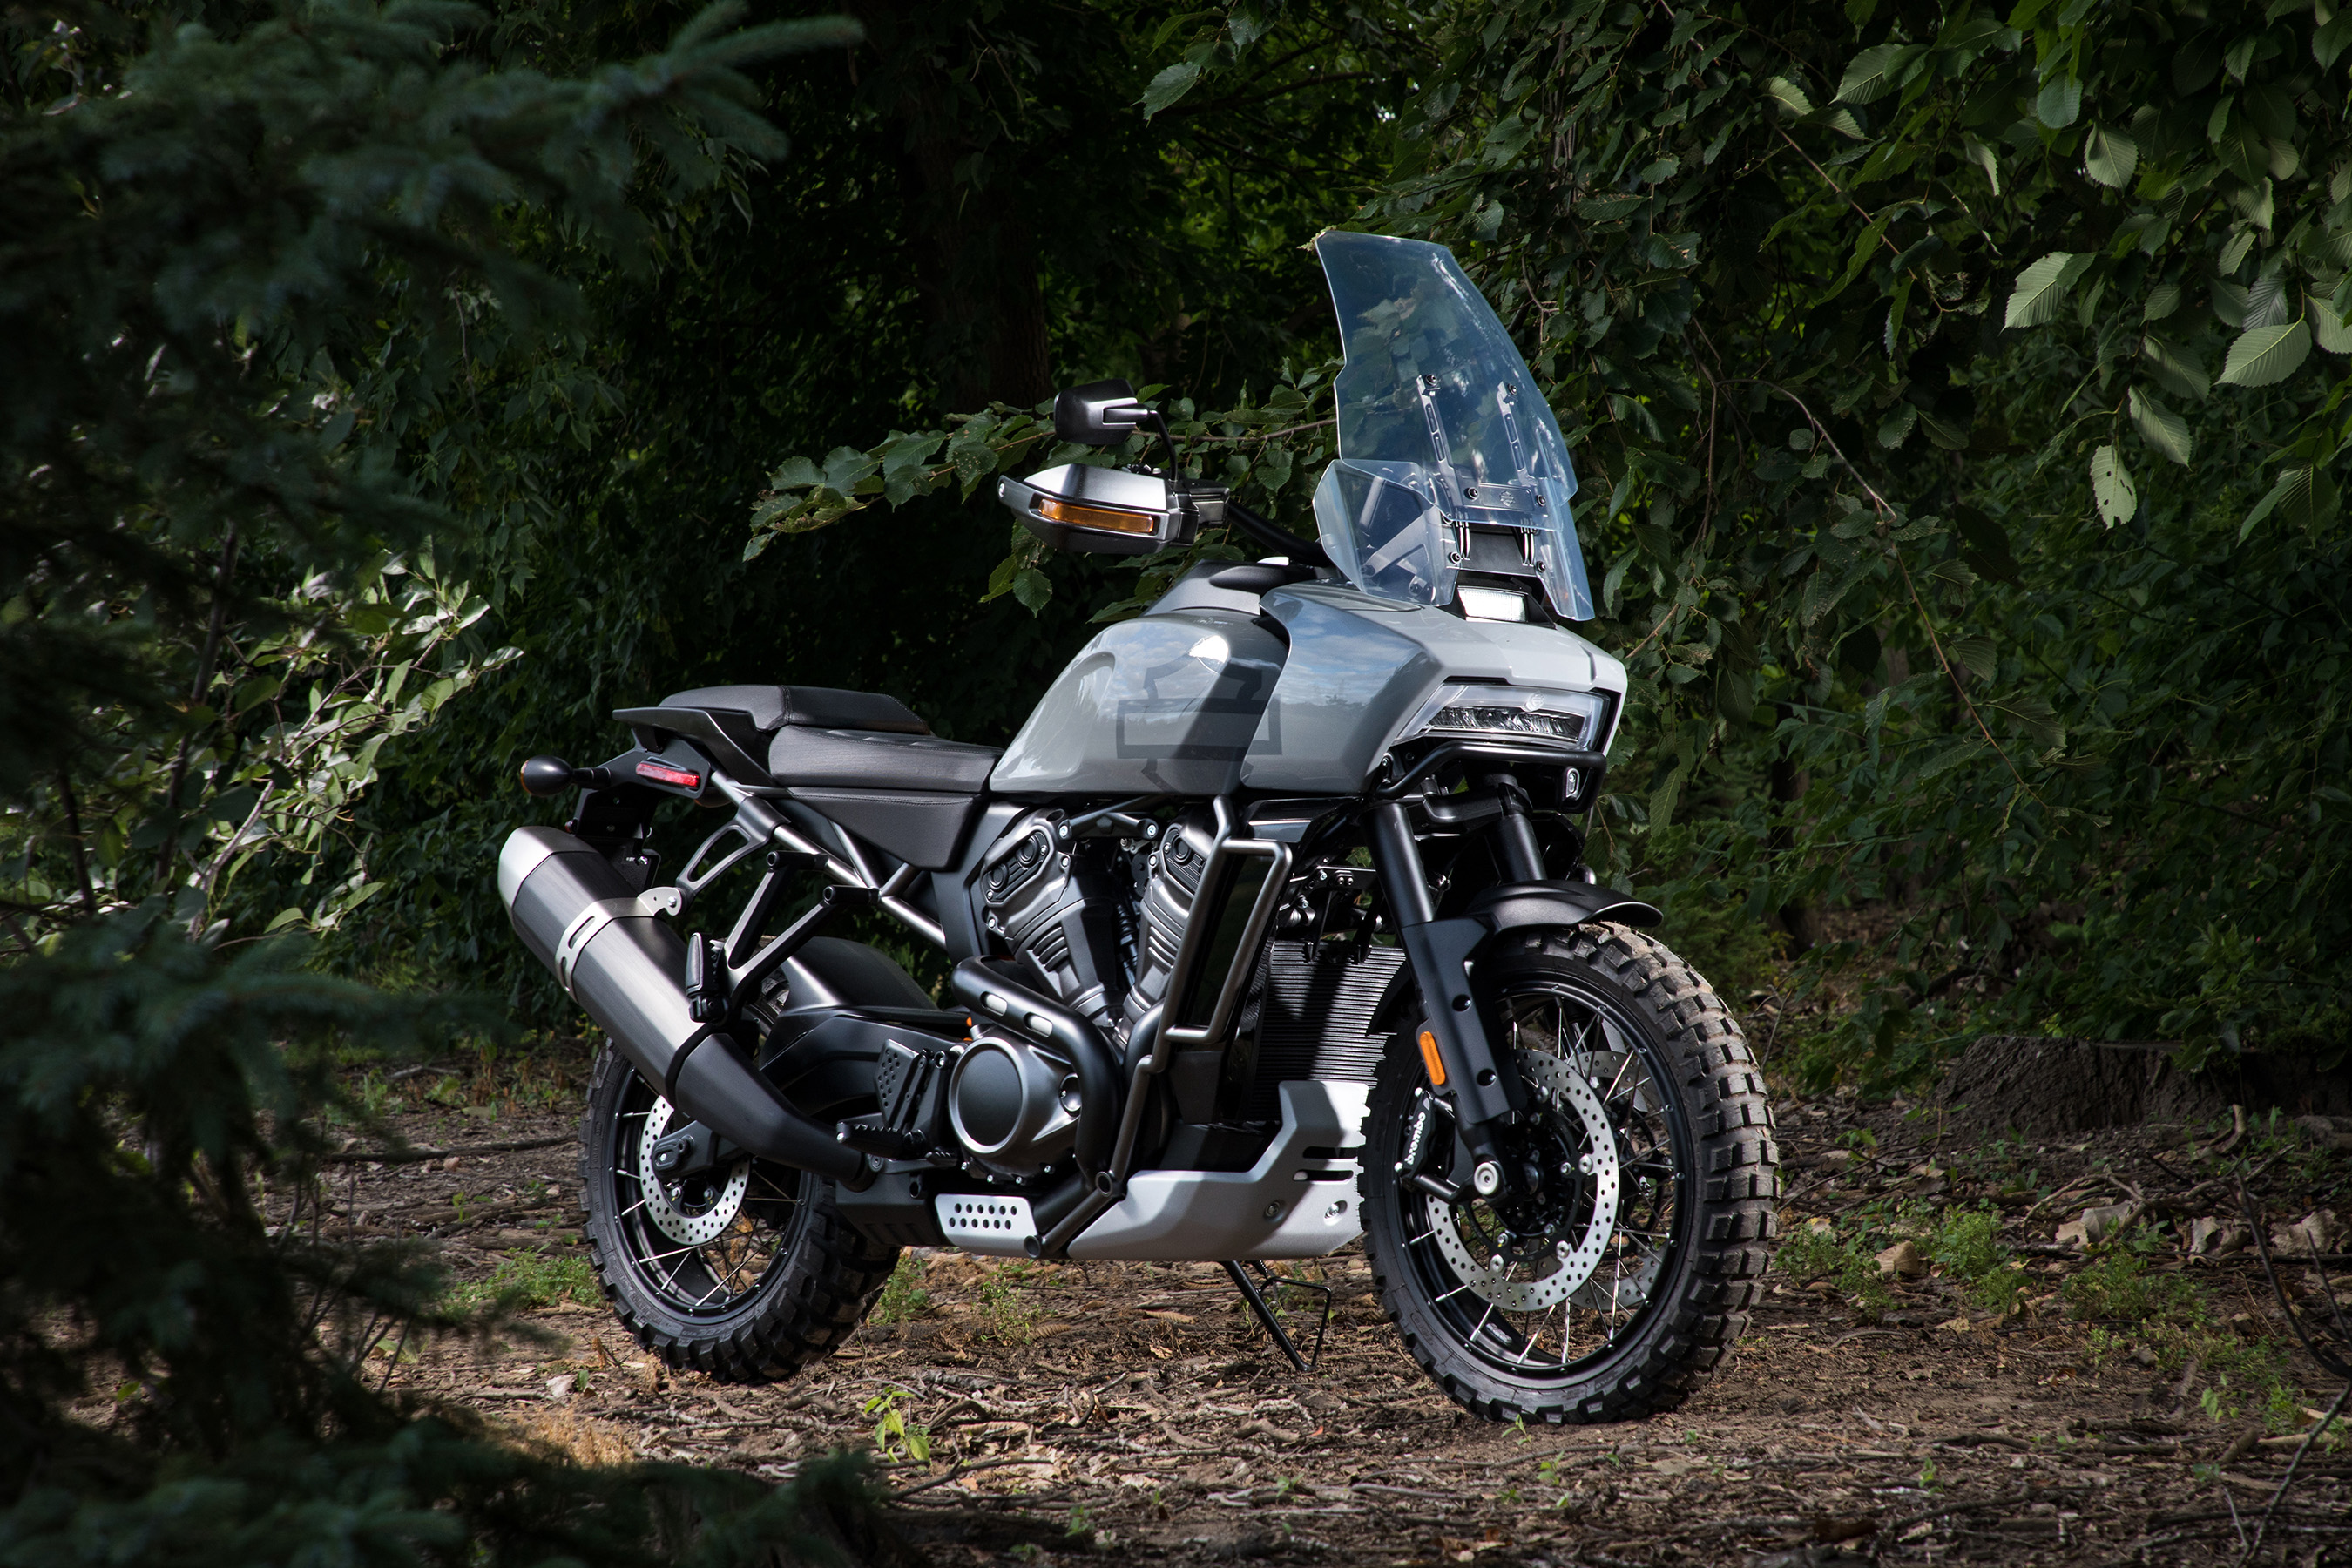 Harley-Davidson's first Adventure Touring motorcycle, the Harley-Davidson(tm) Pan America(tm) 1250 is planned to launch in 2020.